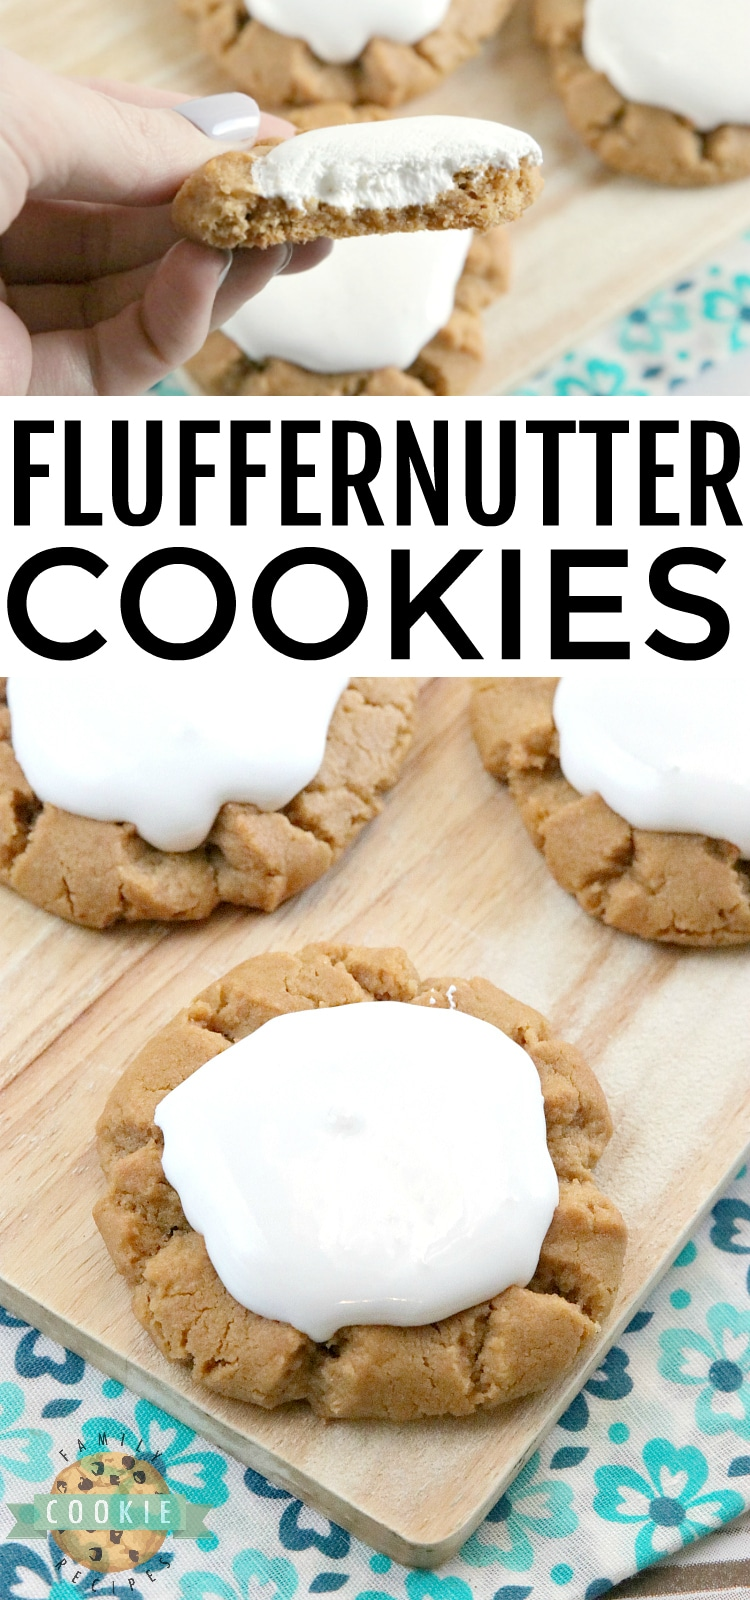 Fluffernutter Cookies take a traditional peanut butter cookie recipe to the next level by adding marshmallow fluff to the top! The peanut butter and marshmallow combination is absolutely amazing in this cookie recipe! via @familycookierecipes